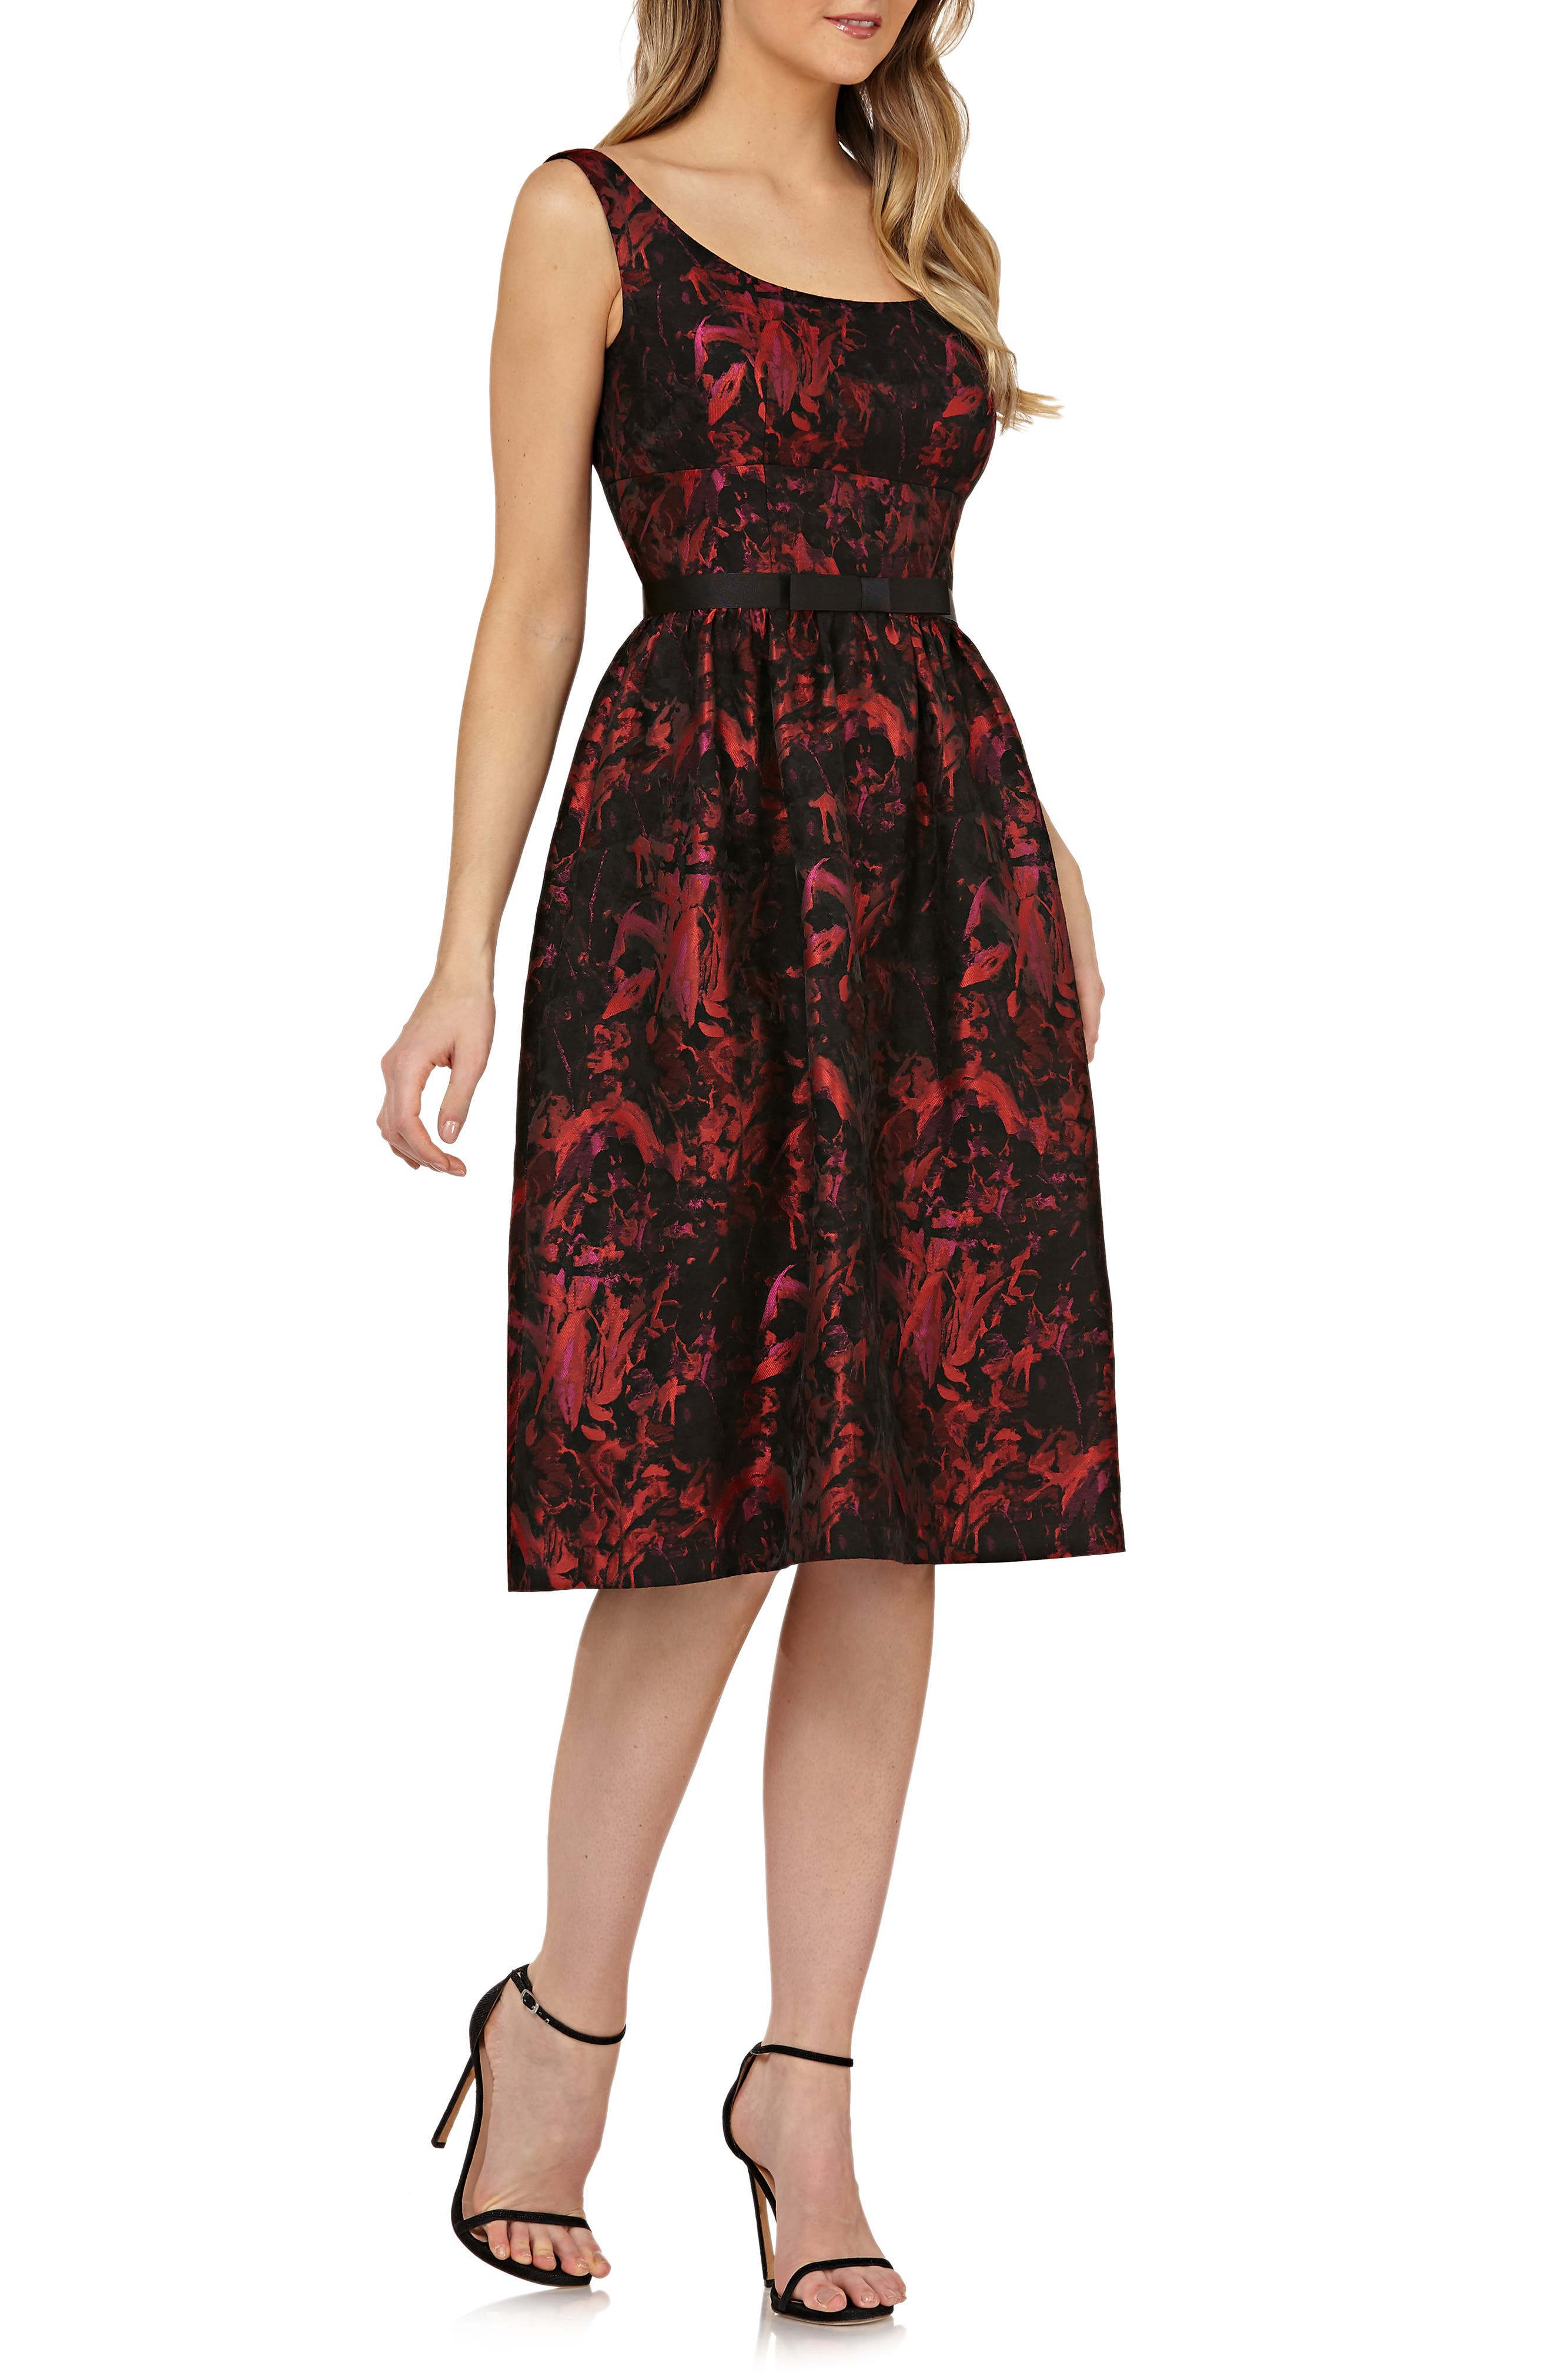 KAY UNGER Sleeveless Bow Waist Fit & Flare Dress in Red/ Black